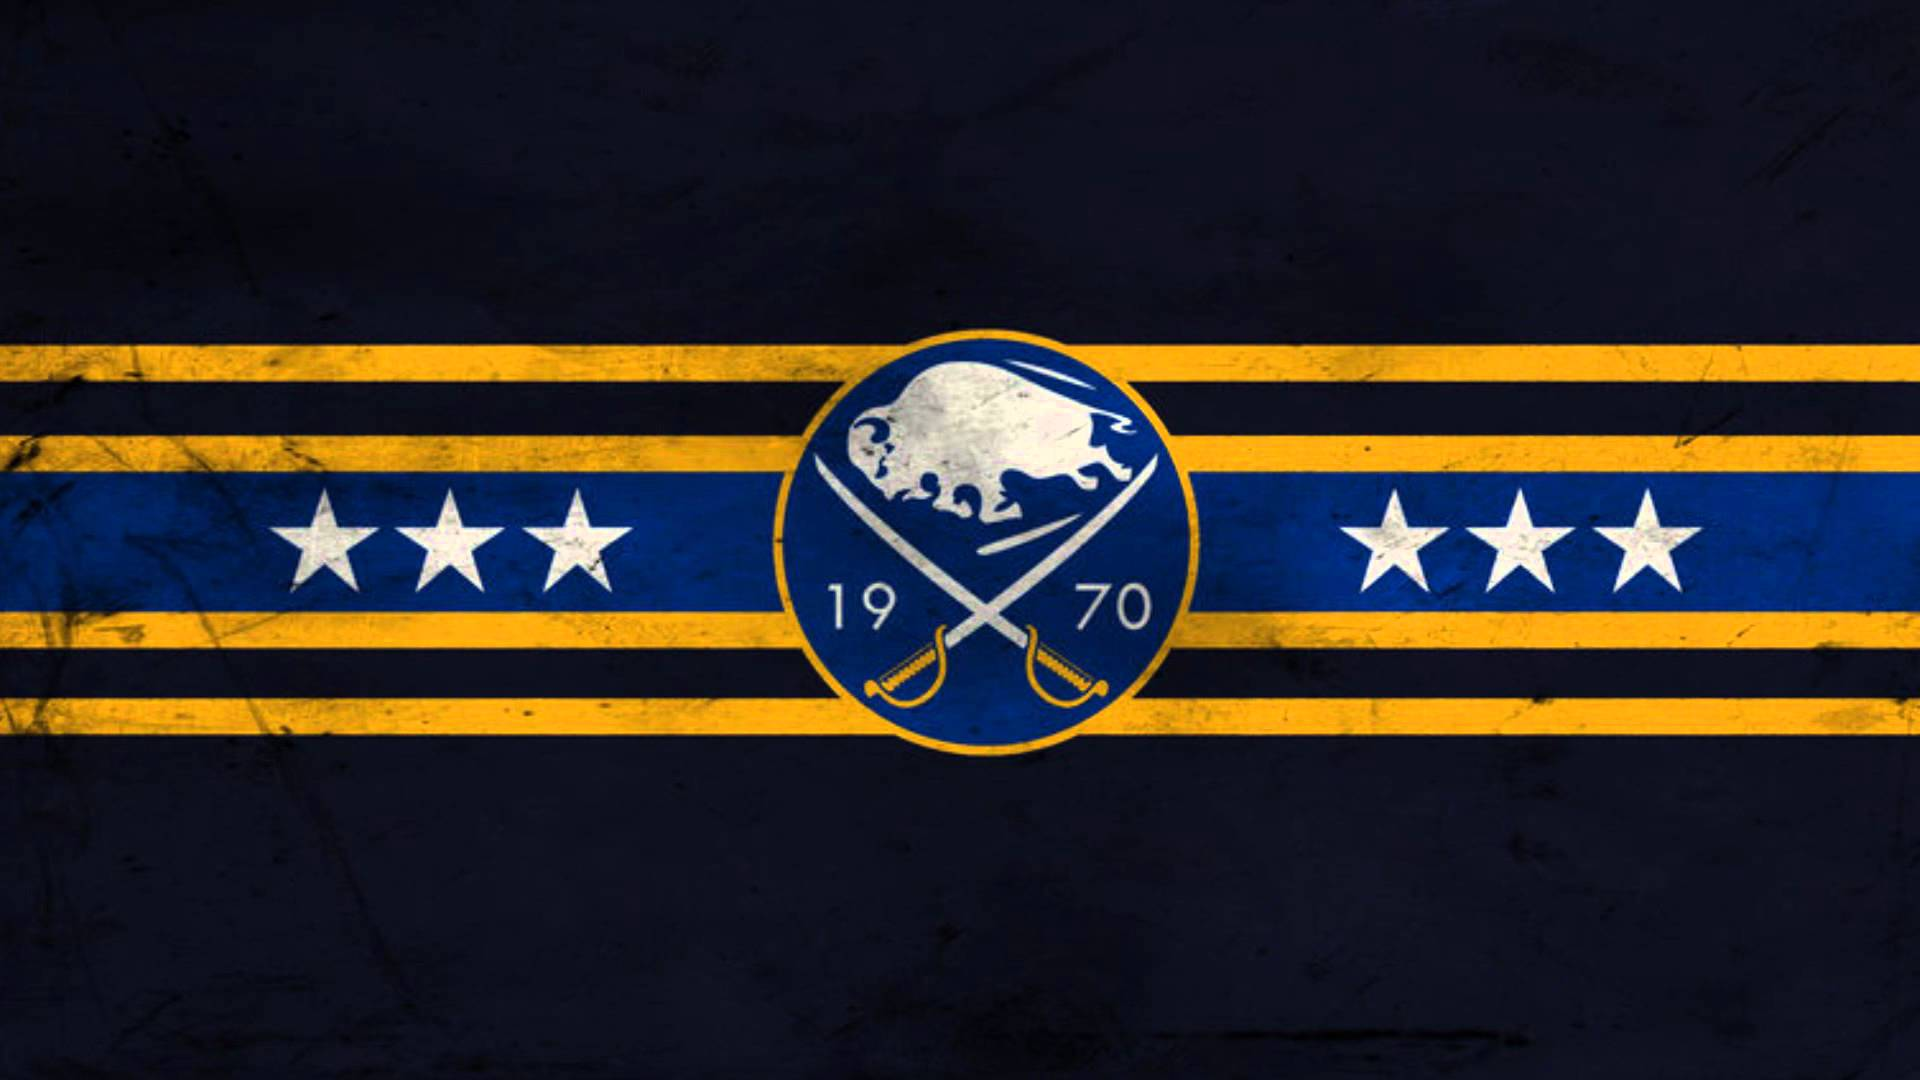 1920x1080 - Buffalo Sabres Wallpapers 21